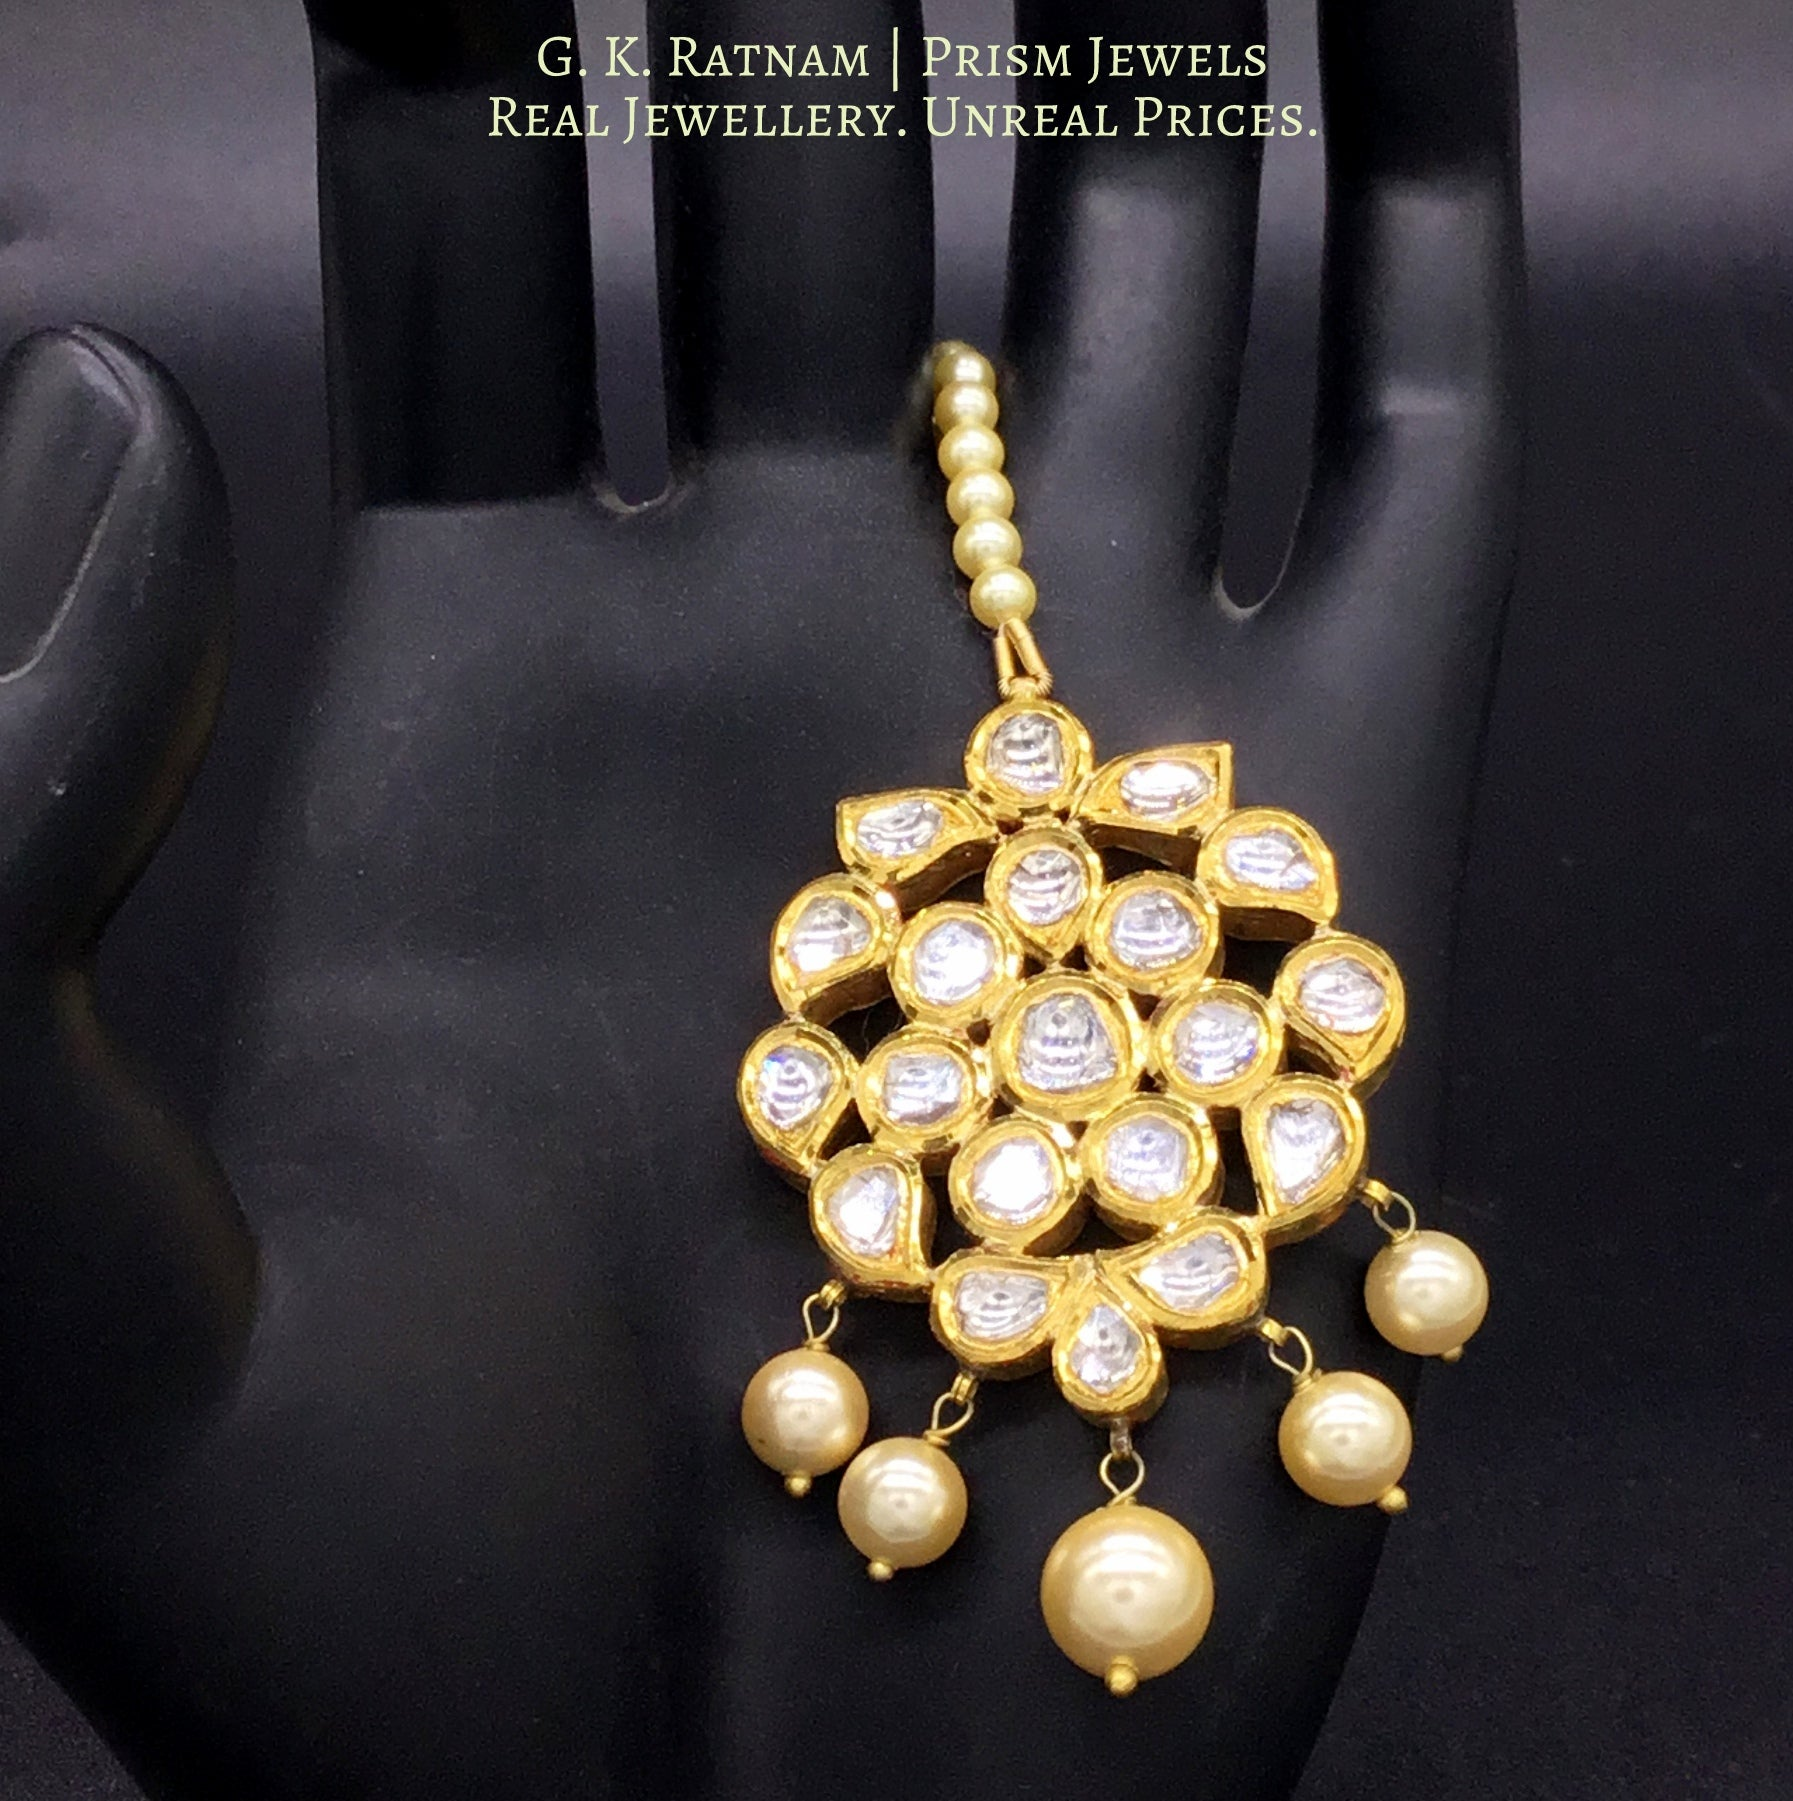 Traditional Gold and Diamond Polki floral Maang Tika with Syndicate uncut diamonds - gold diamond polki kundan meena jadau jewellery